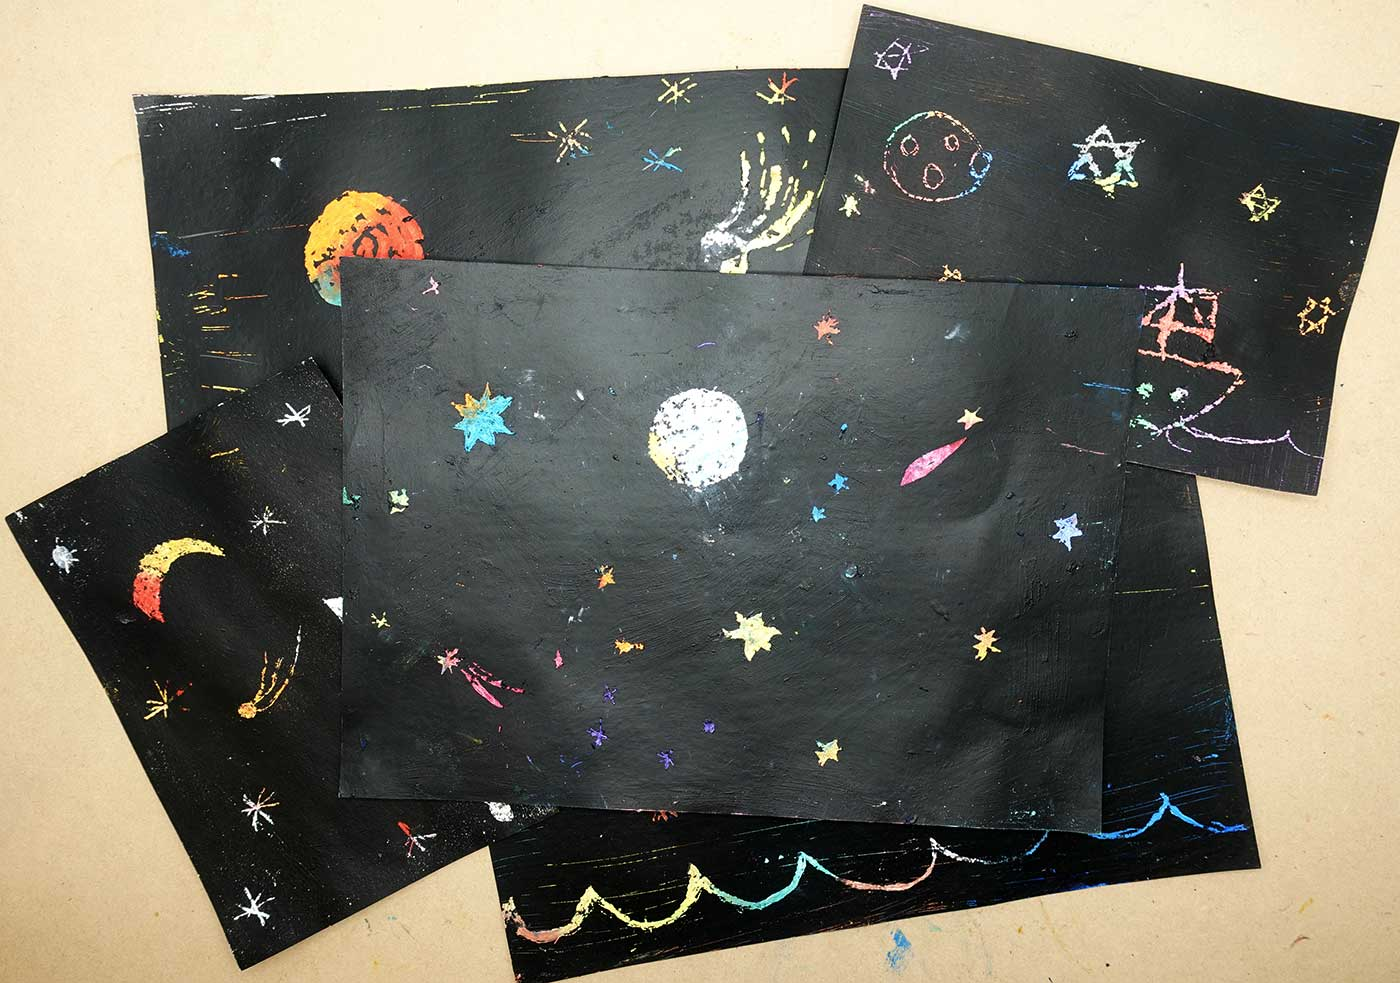 A series of paintings featuring stars and planets in the sky.